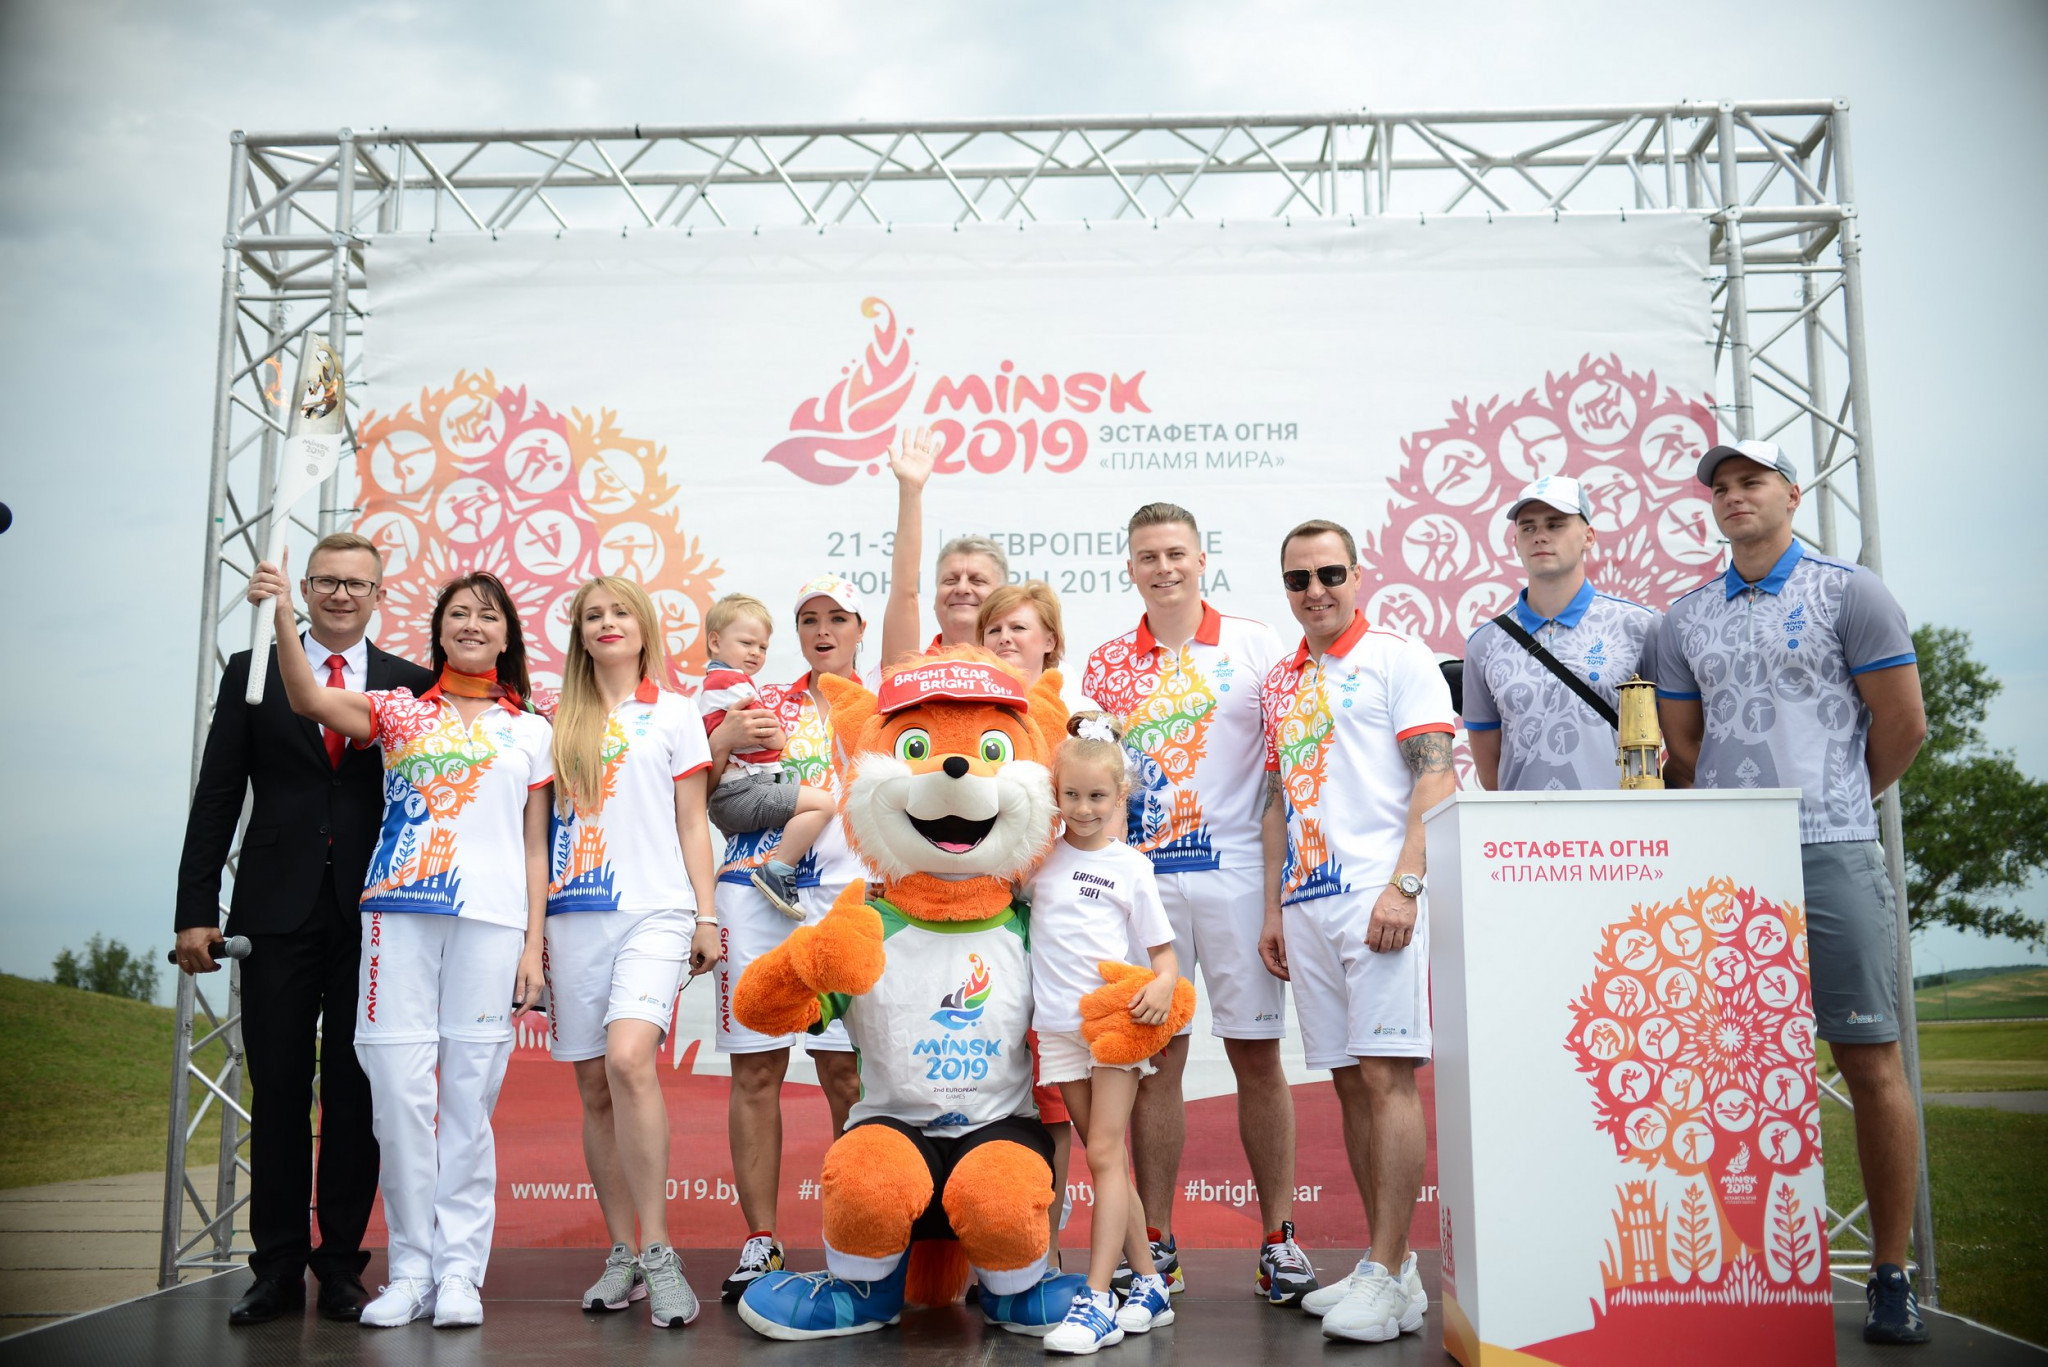 Lighting of cauldron to provide highlight of Minsk 2019 Opening Ceremony